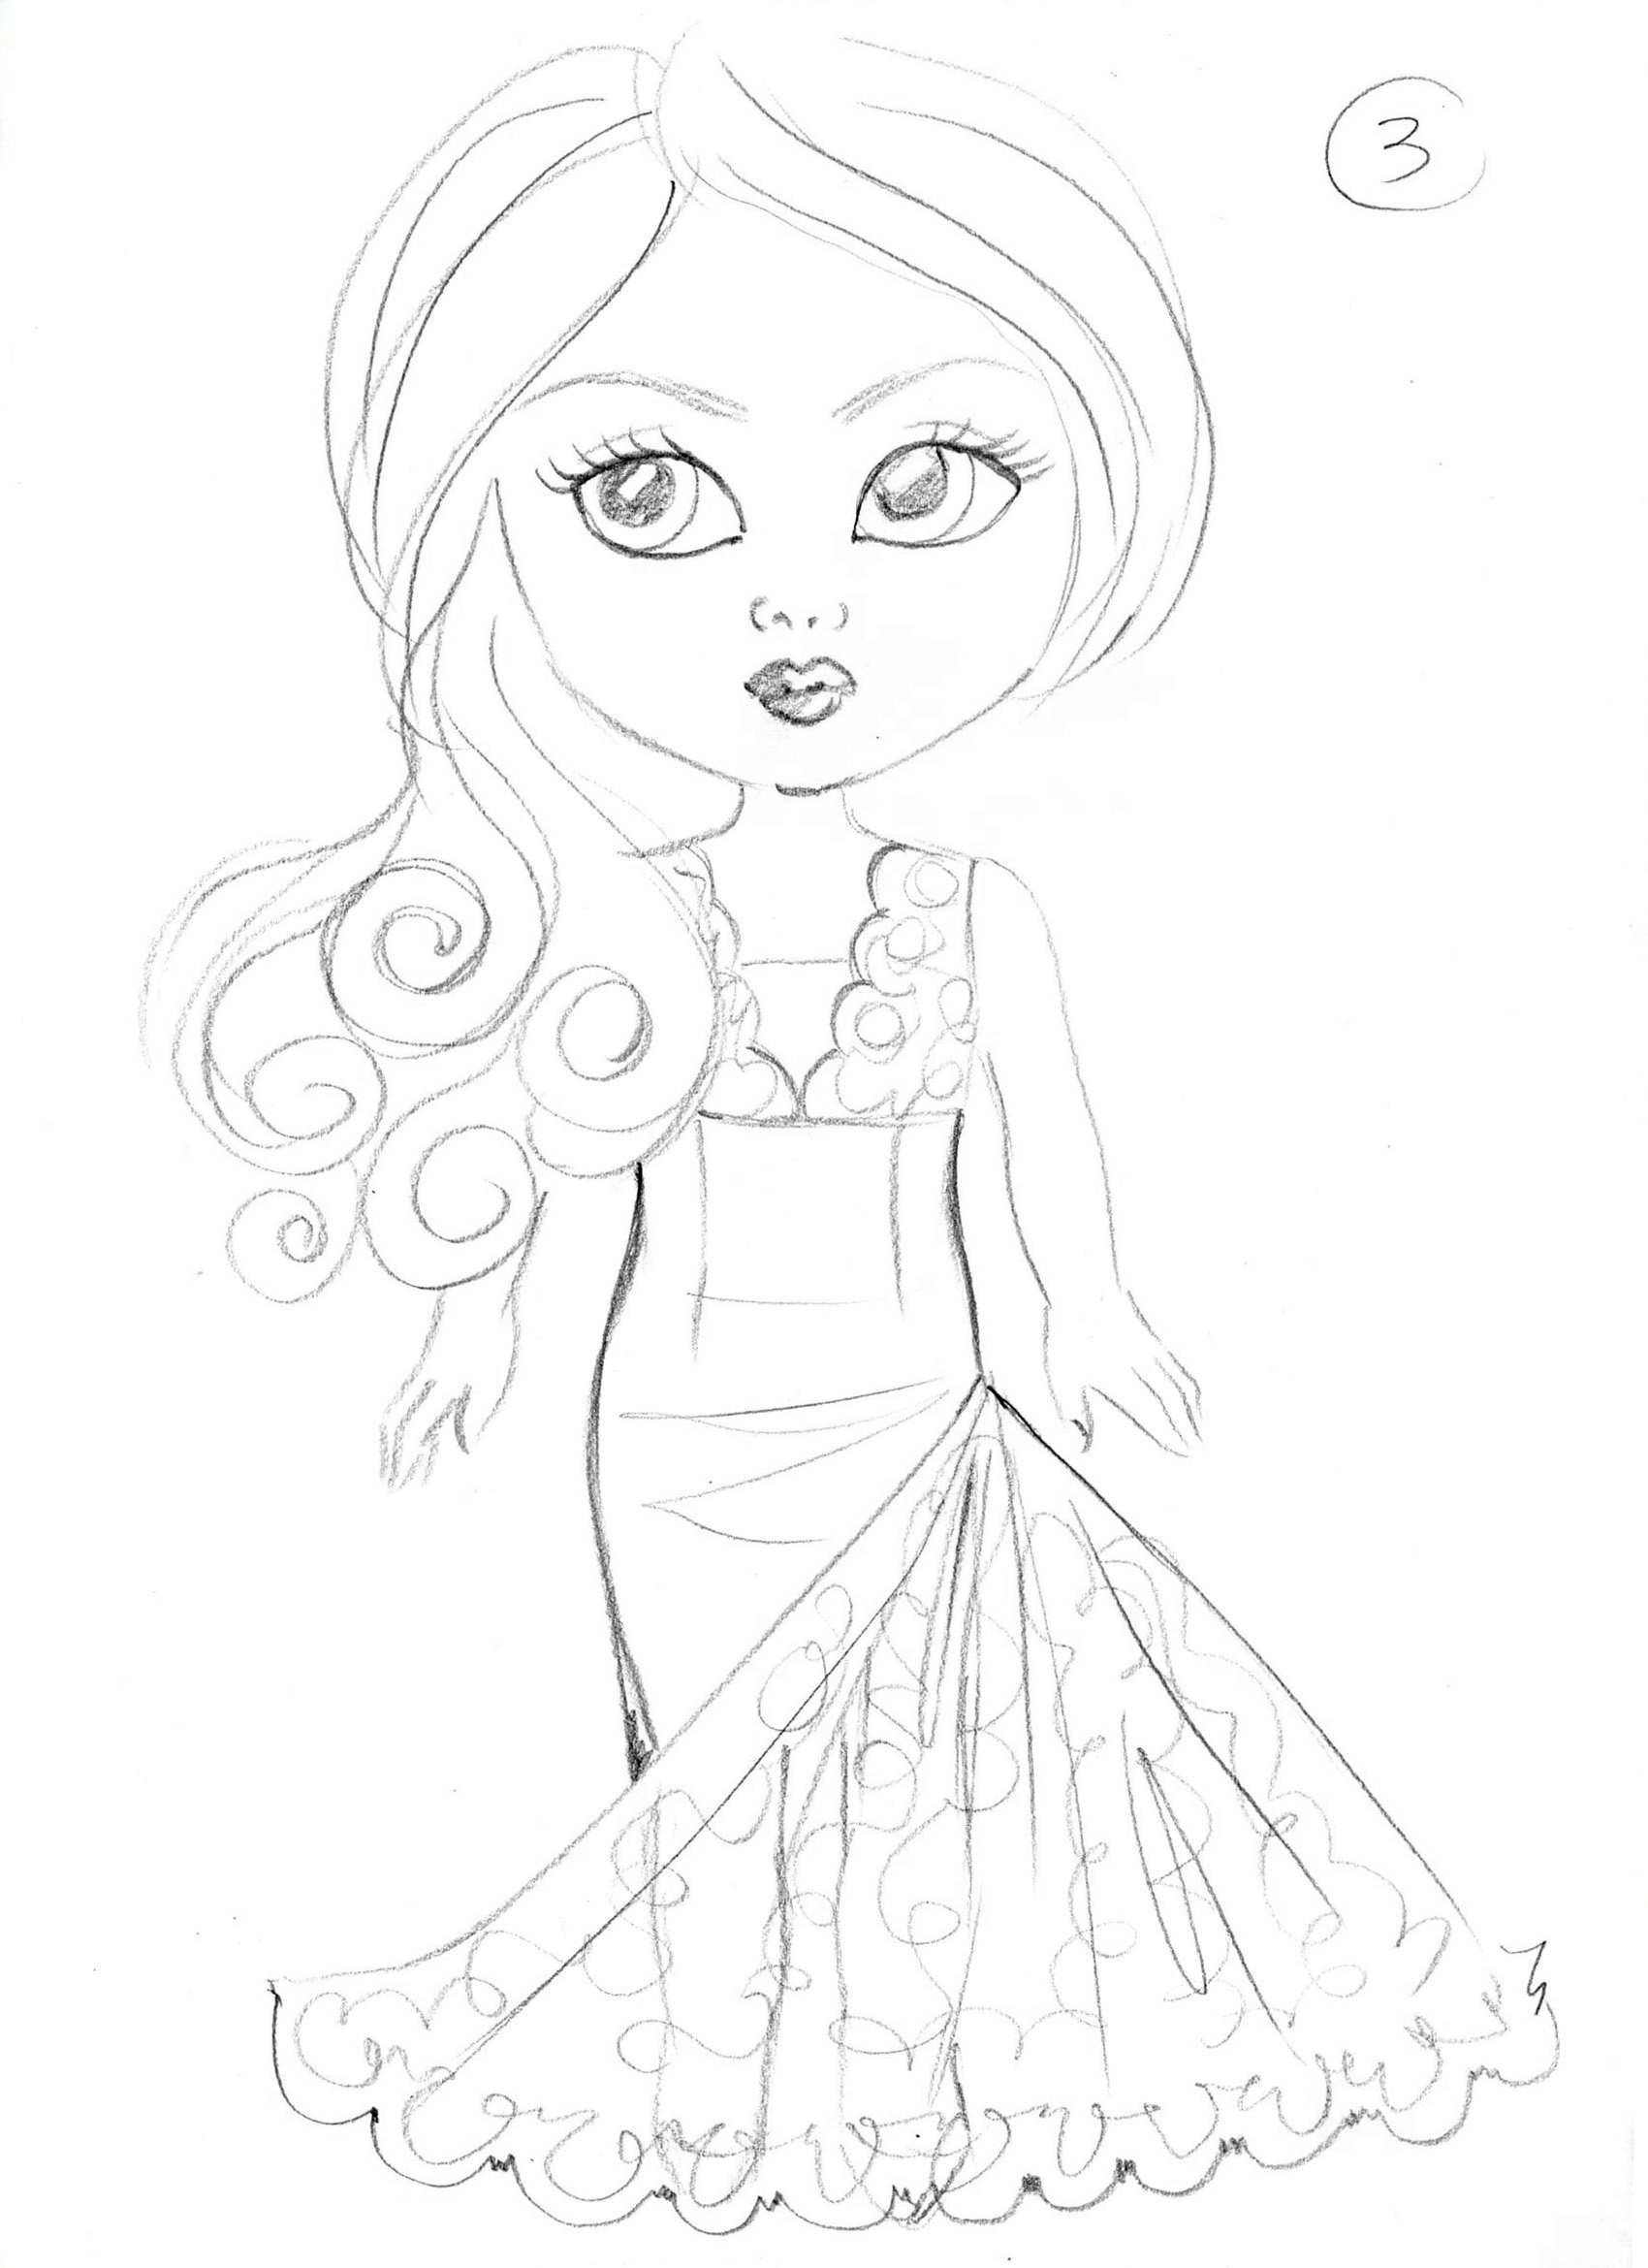 Debutante Doll Pencil Design Concept